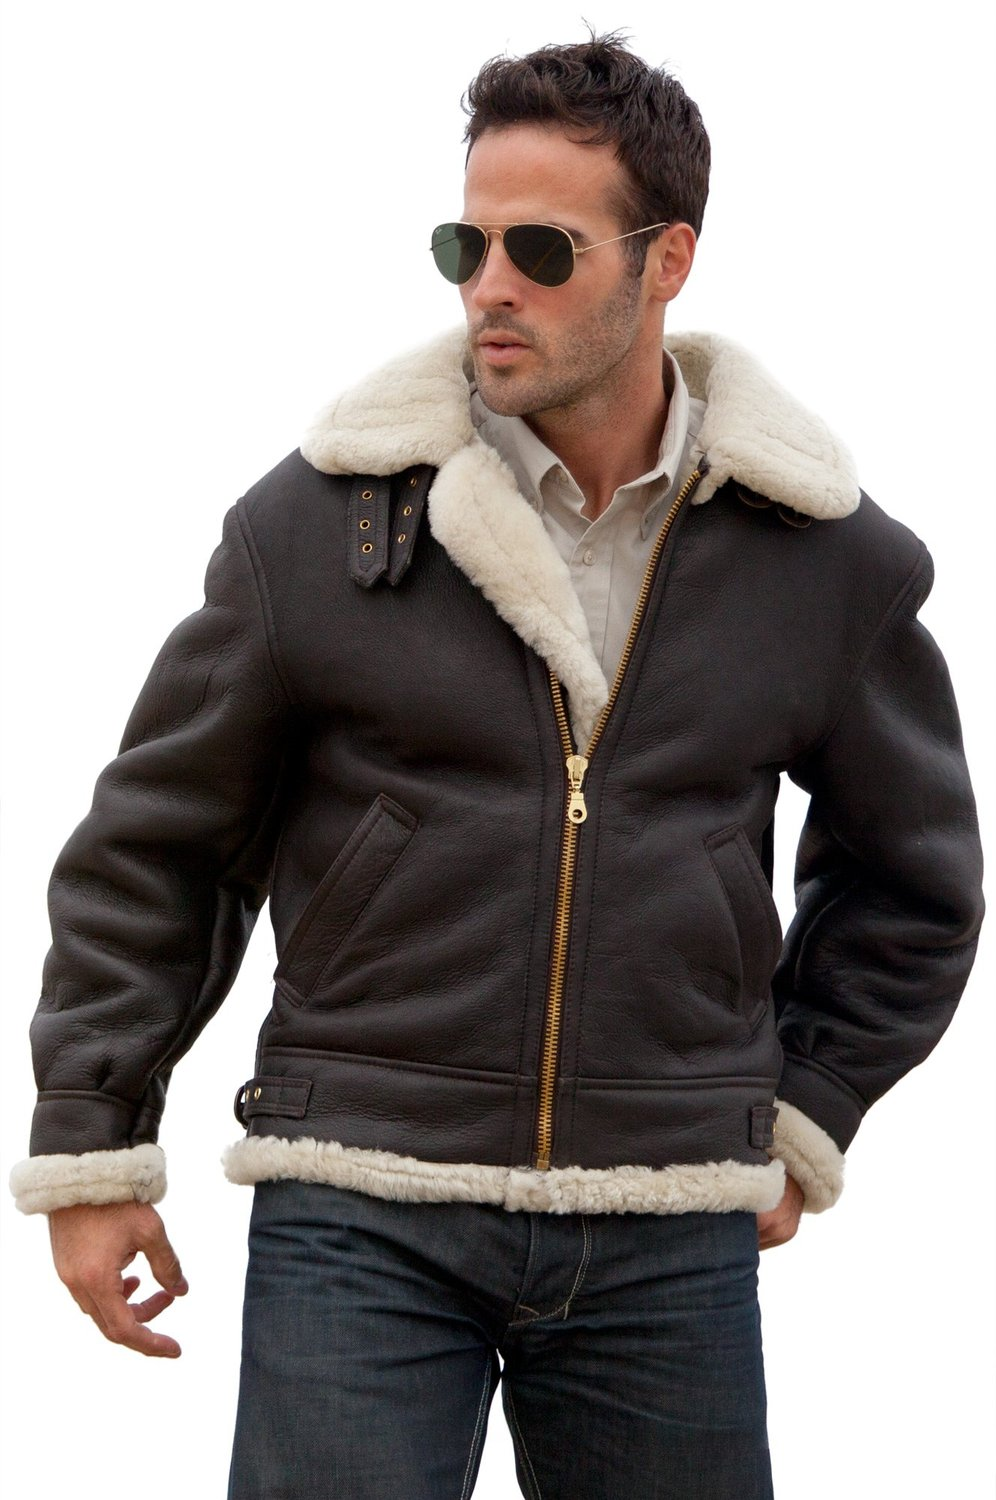 Best sellers for Sheepskin Bomber Jackets